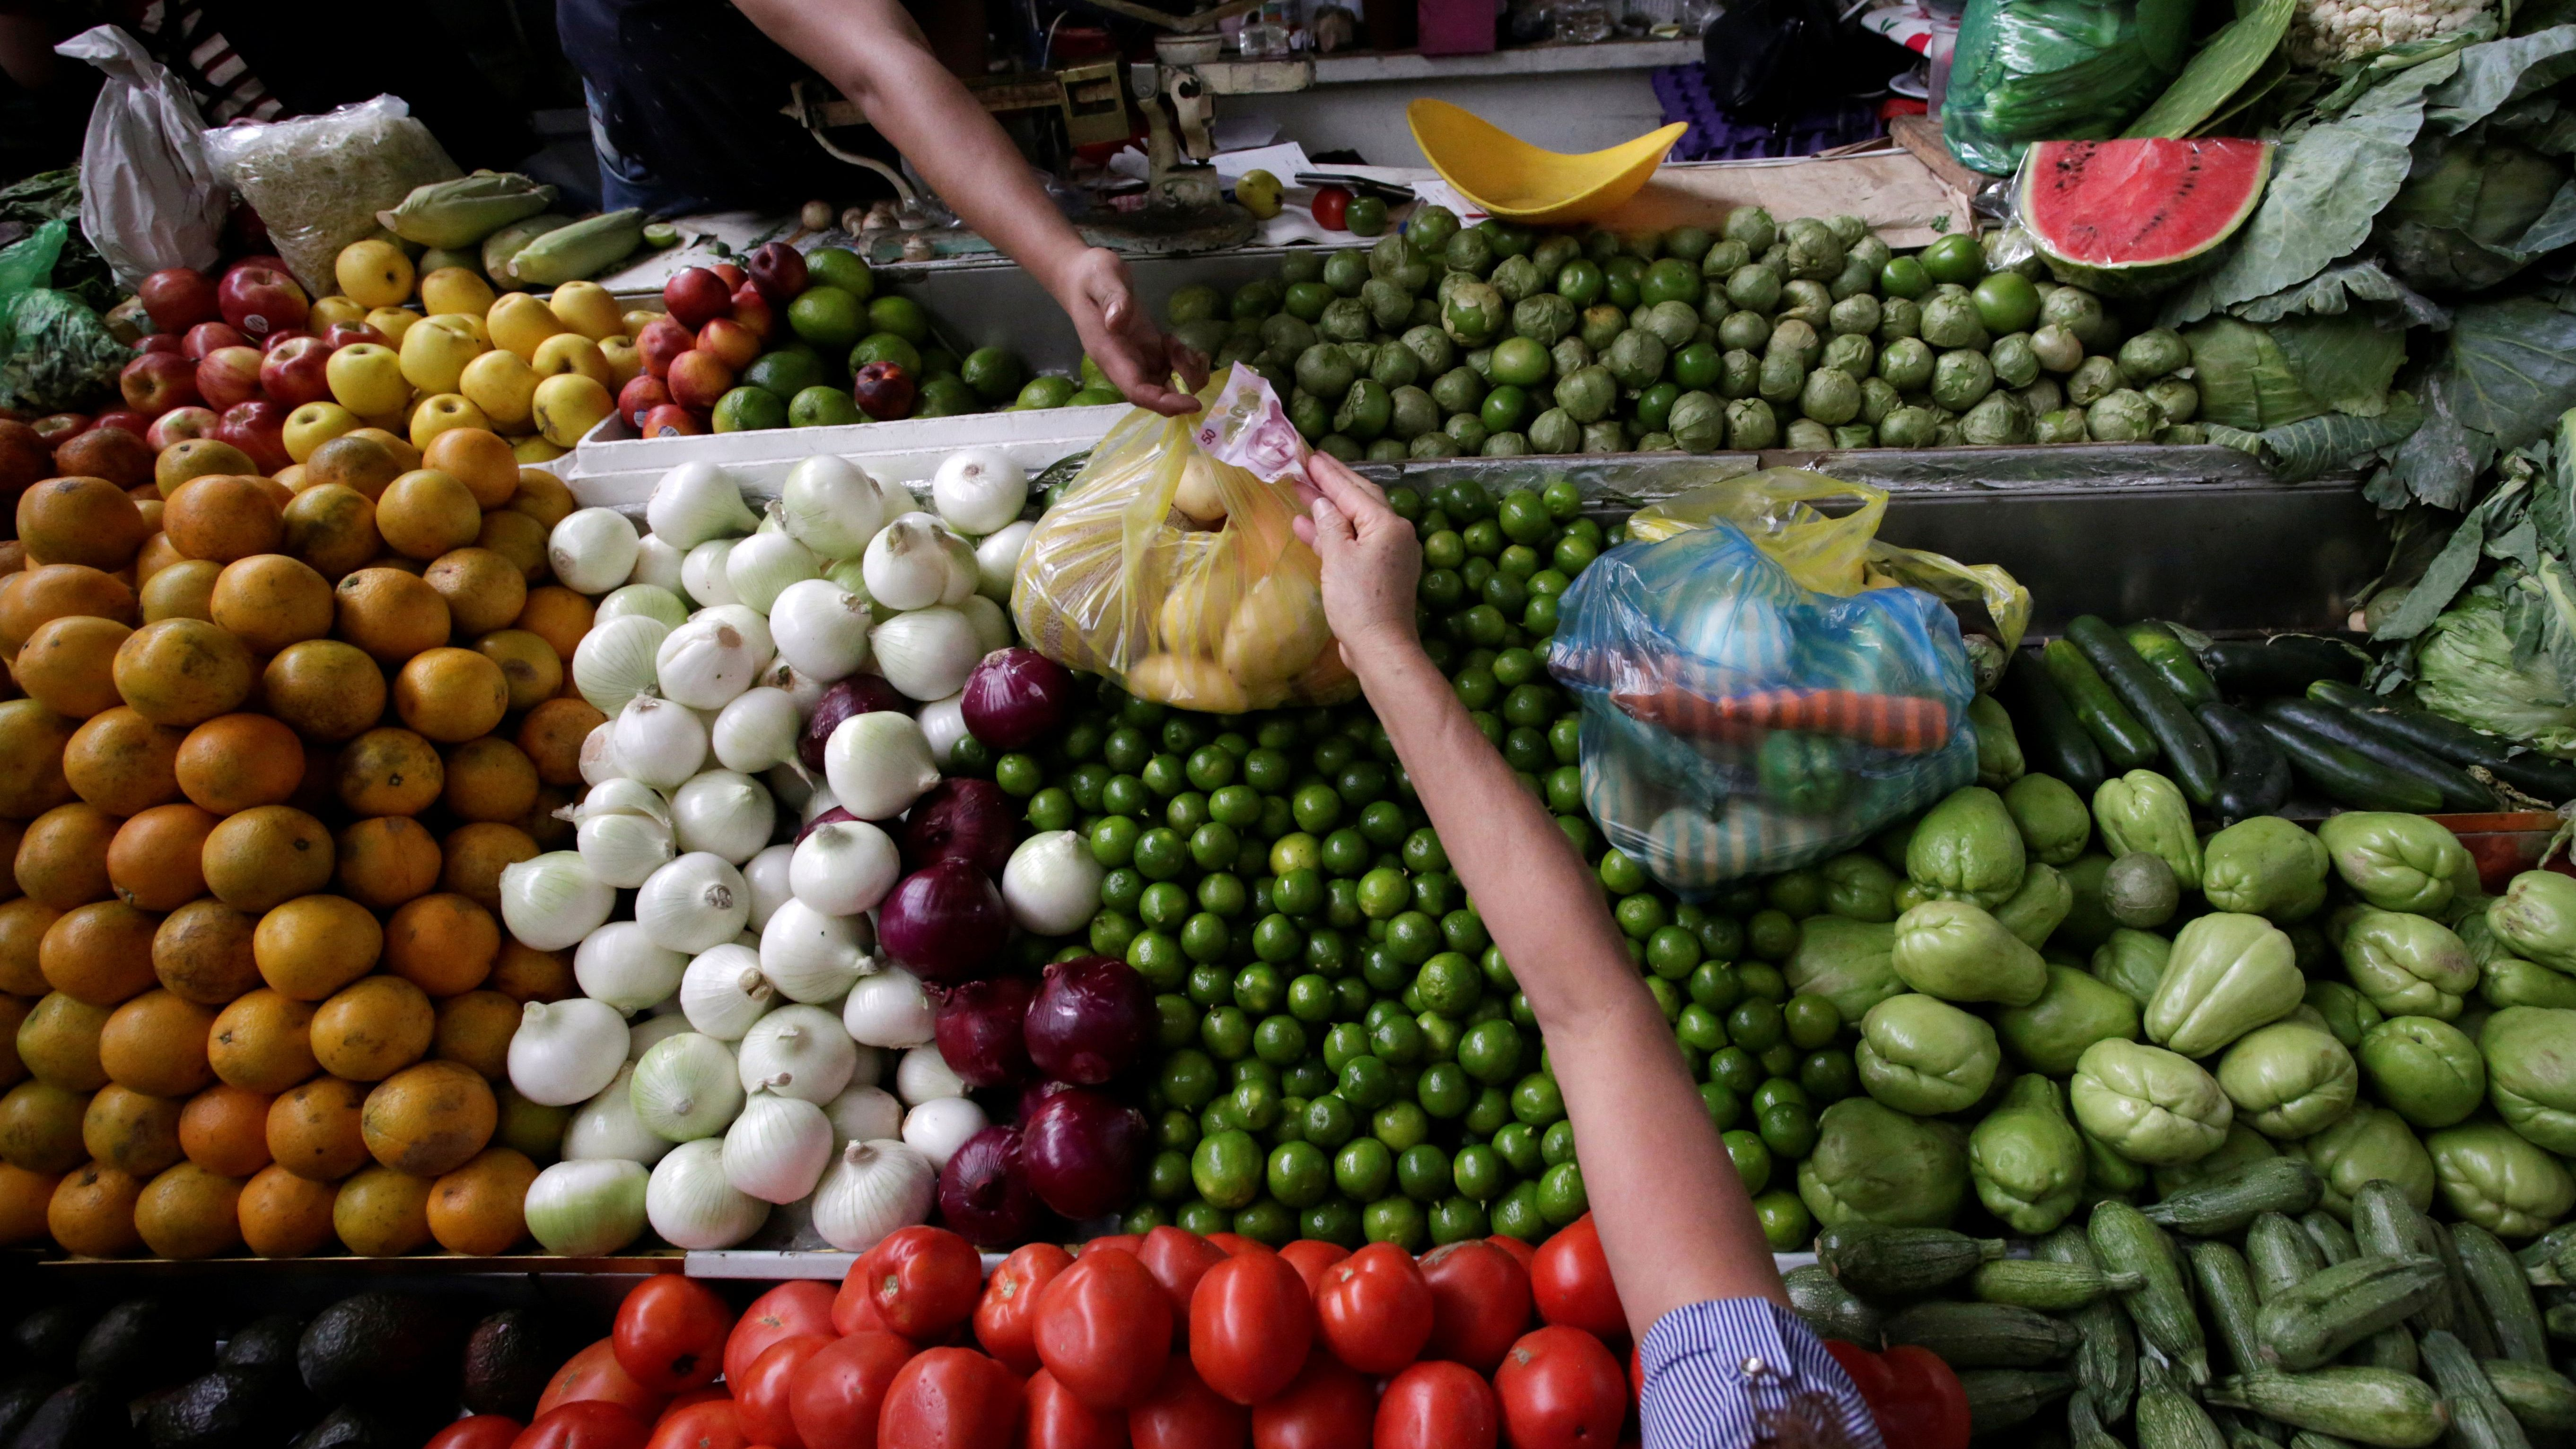 A woman buys vegetables at a market stall in Mexico City